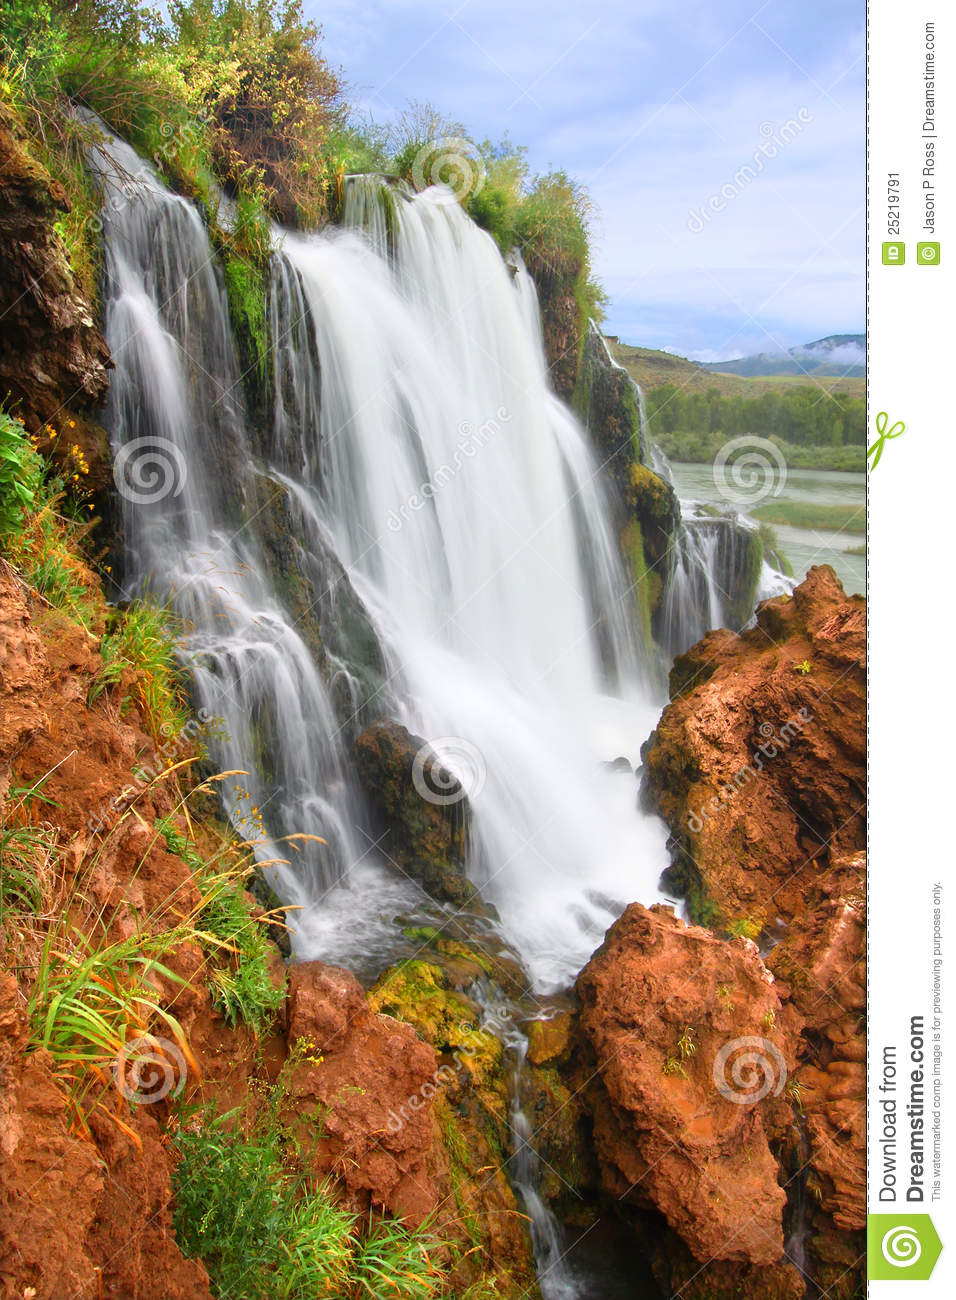 Falls Creek Falls clipart #17, Download drawings